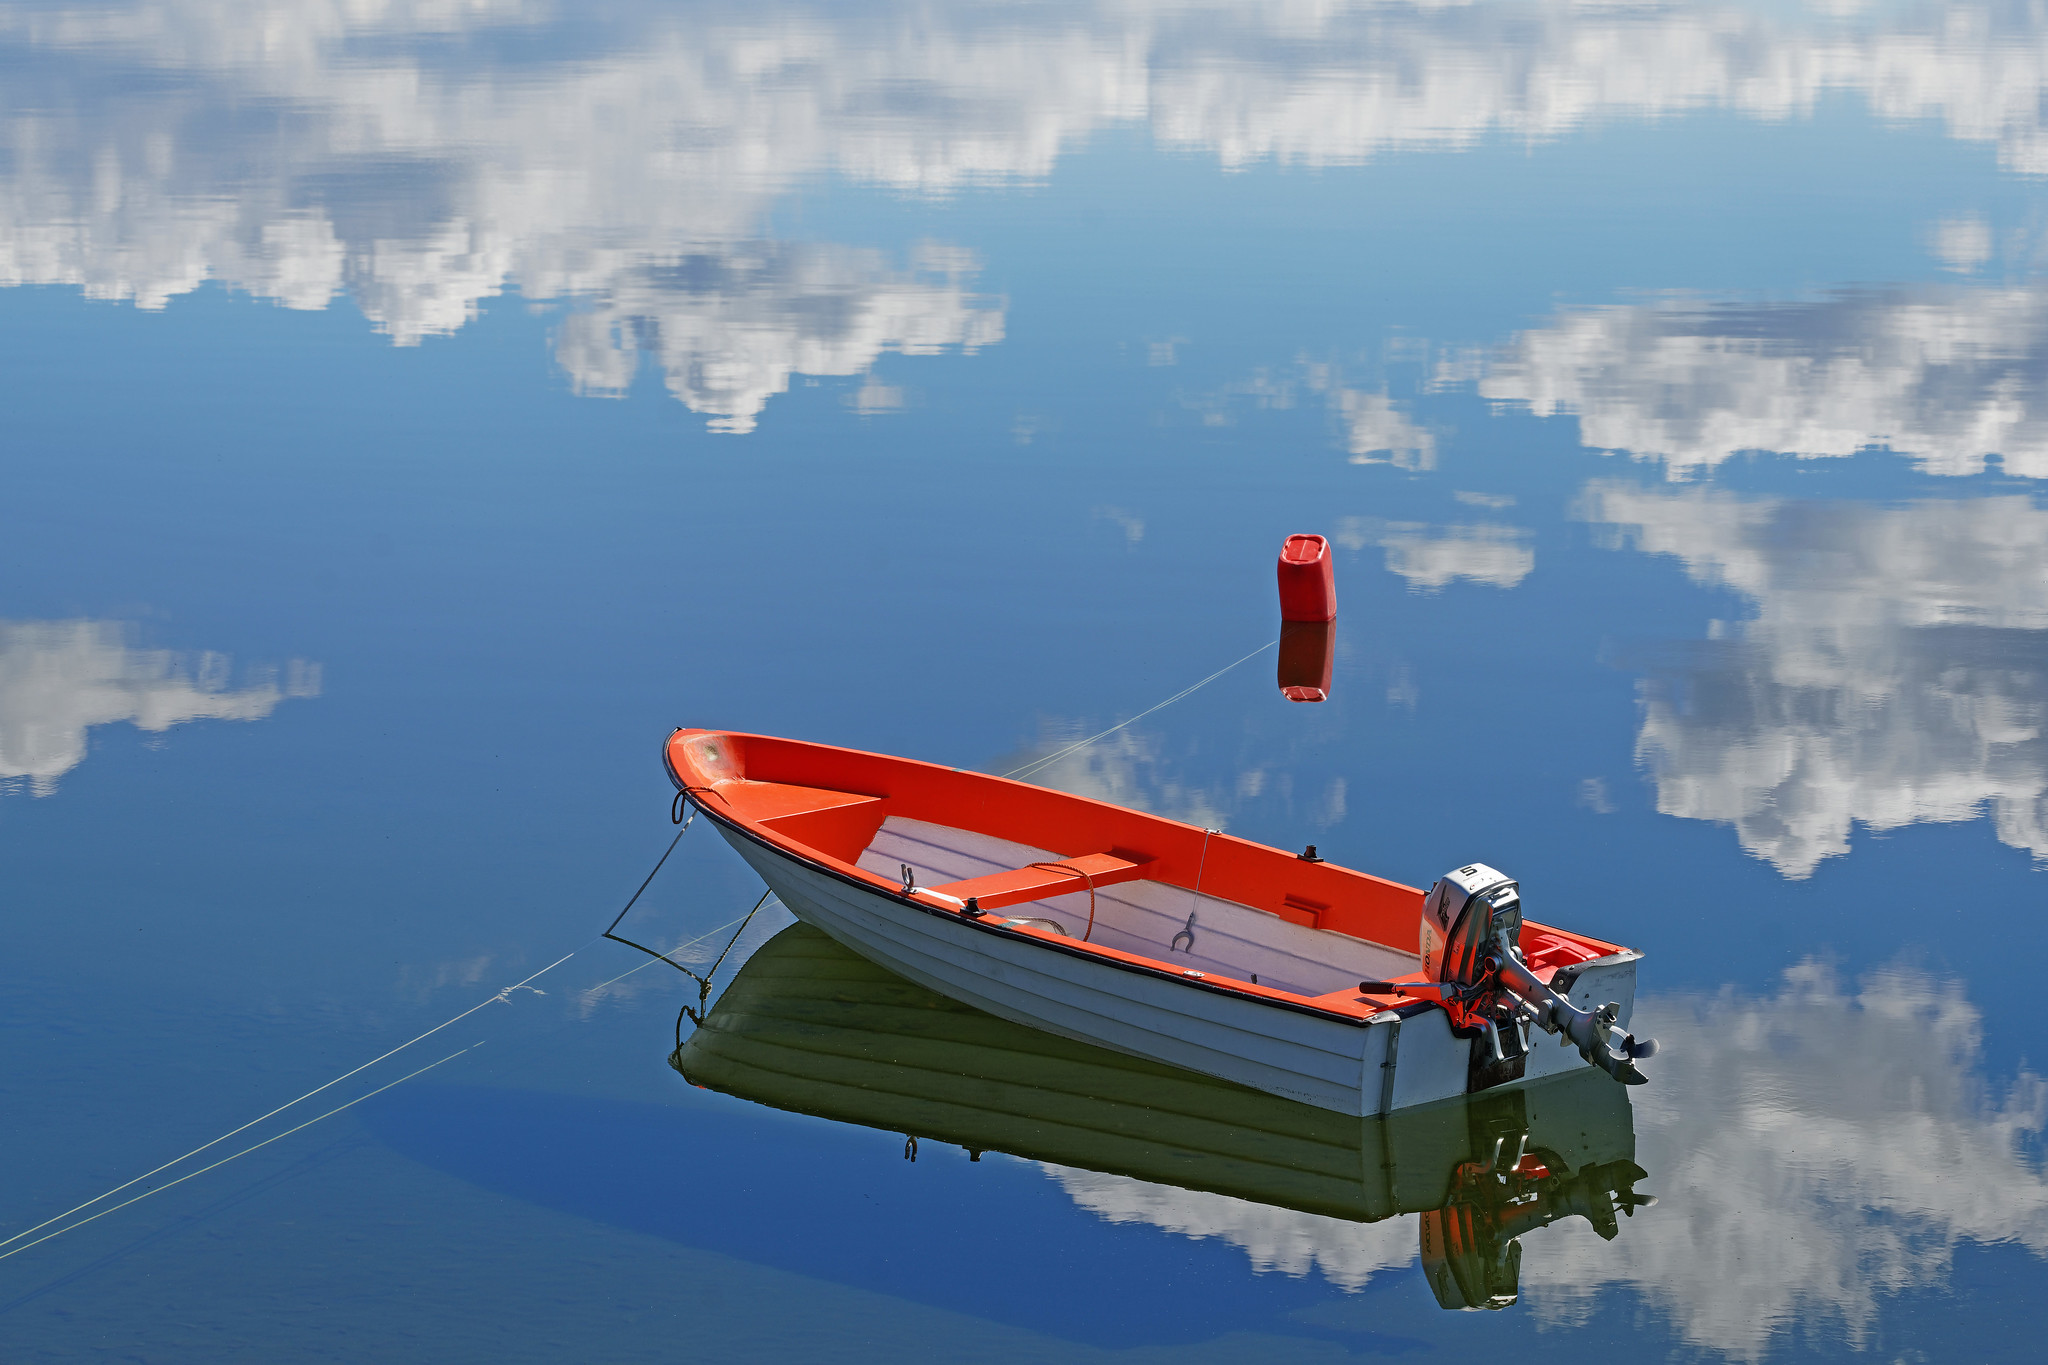 Boat In The Clouds